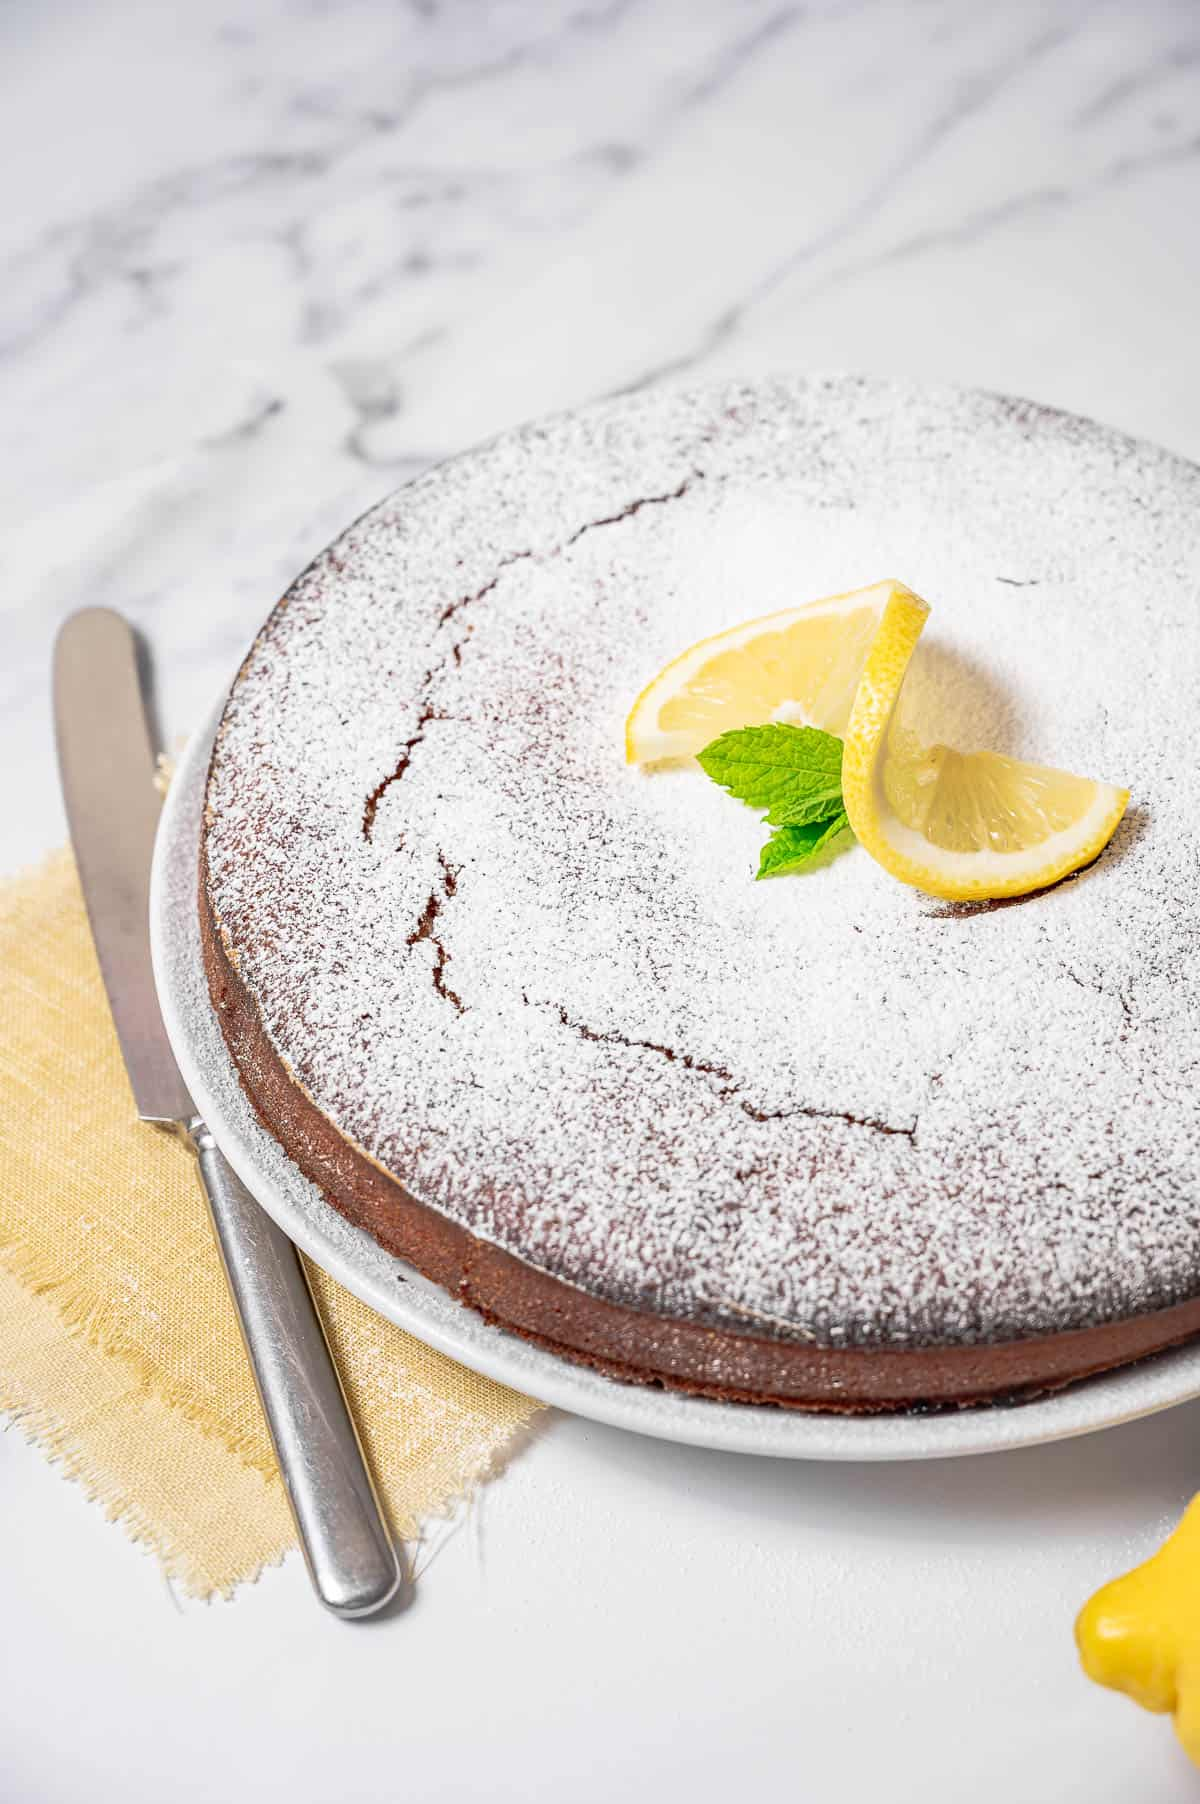 Lemon olive oil cake with almonds on a white cake dish topped with sliced lemon